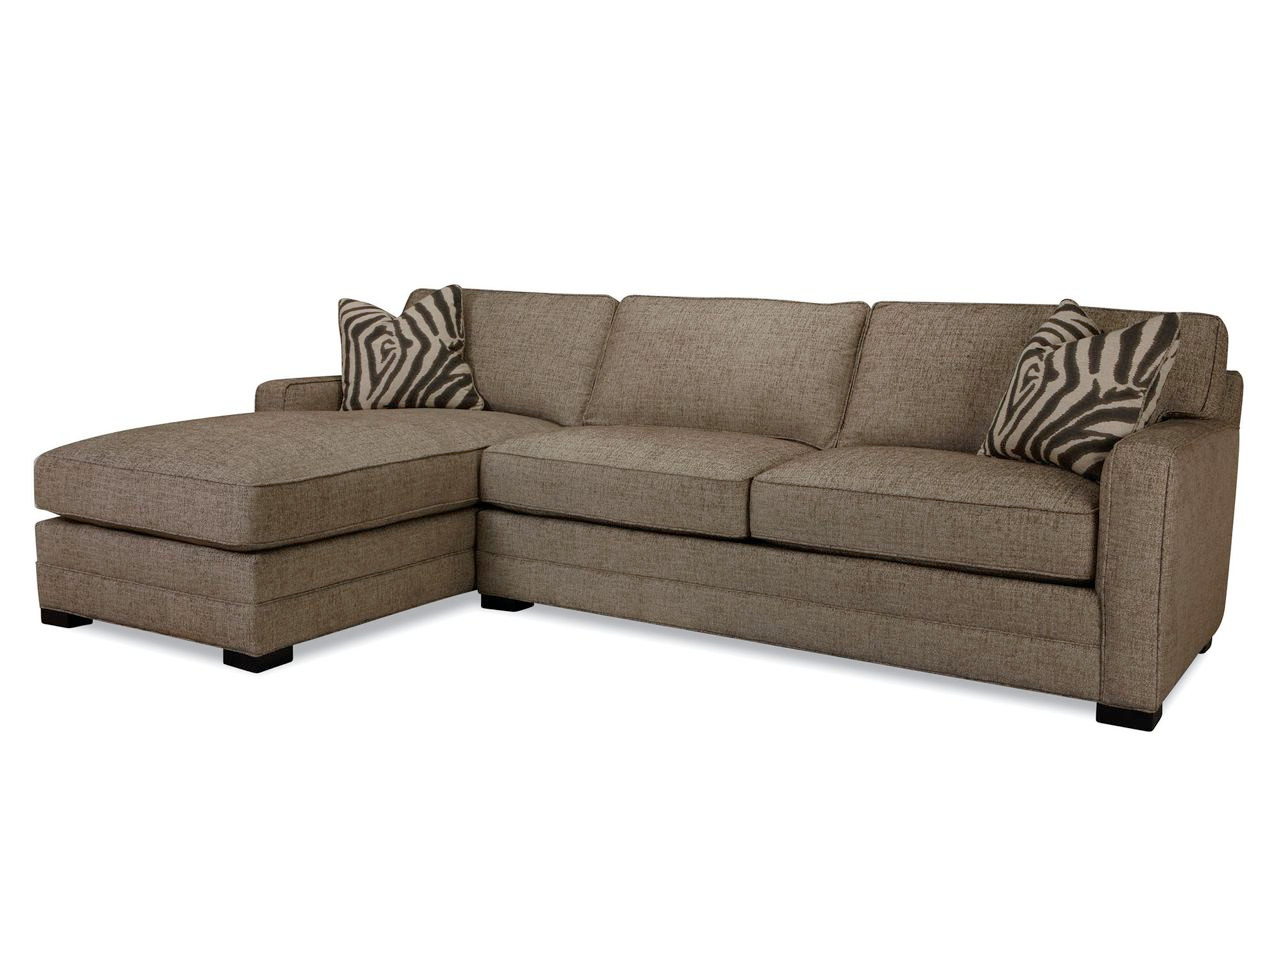 Sofa Sectionals With Bed Emery Sectional Series Upholstered Sectionals Sofas Sectionals